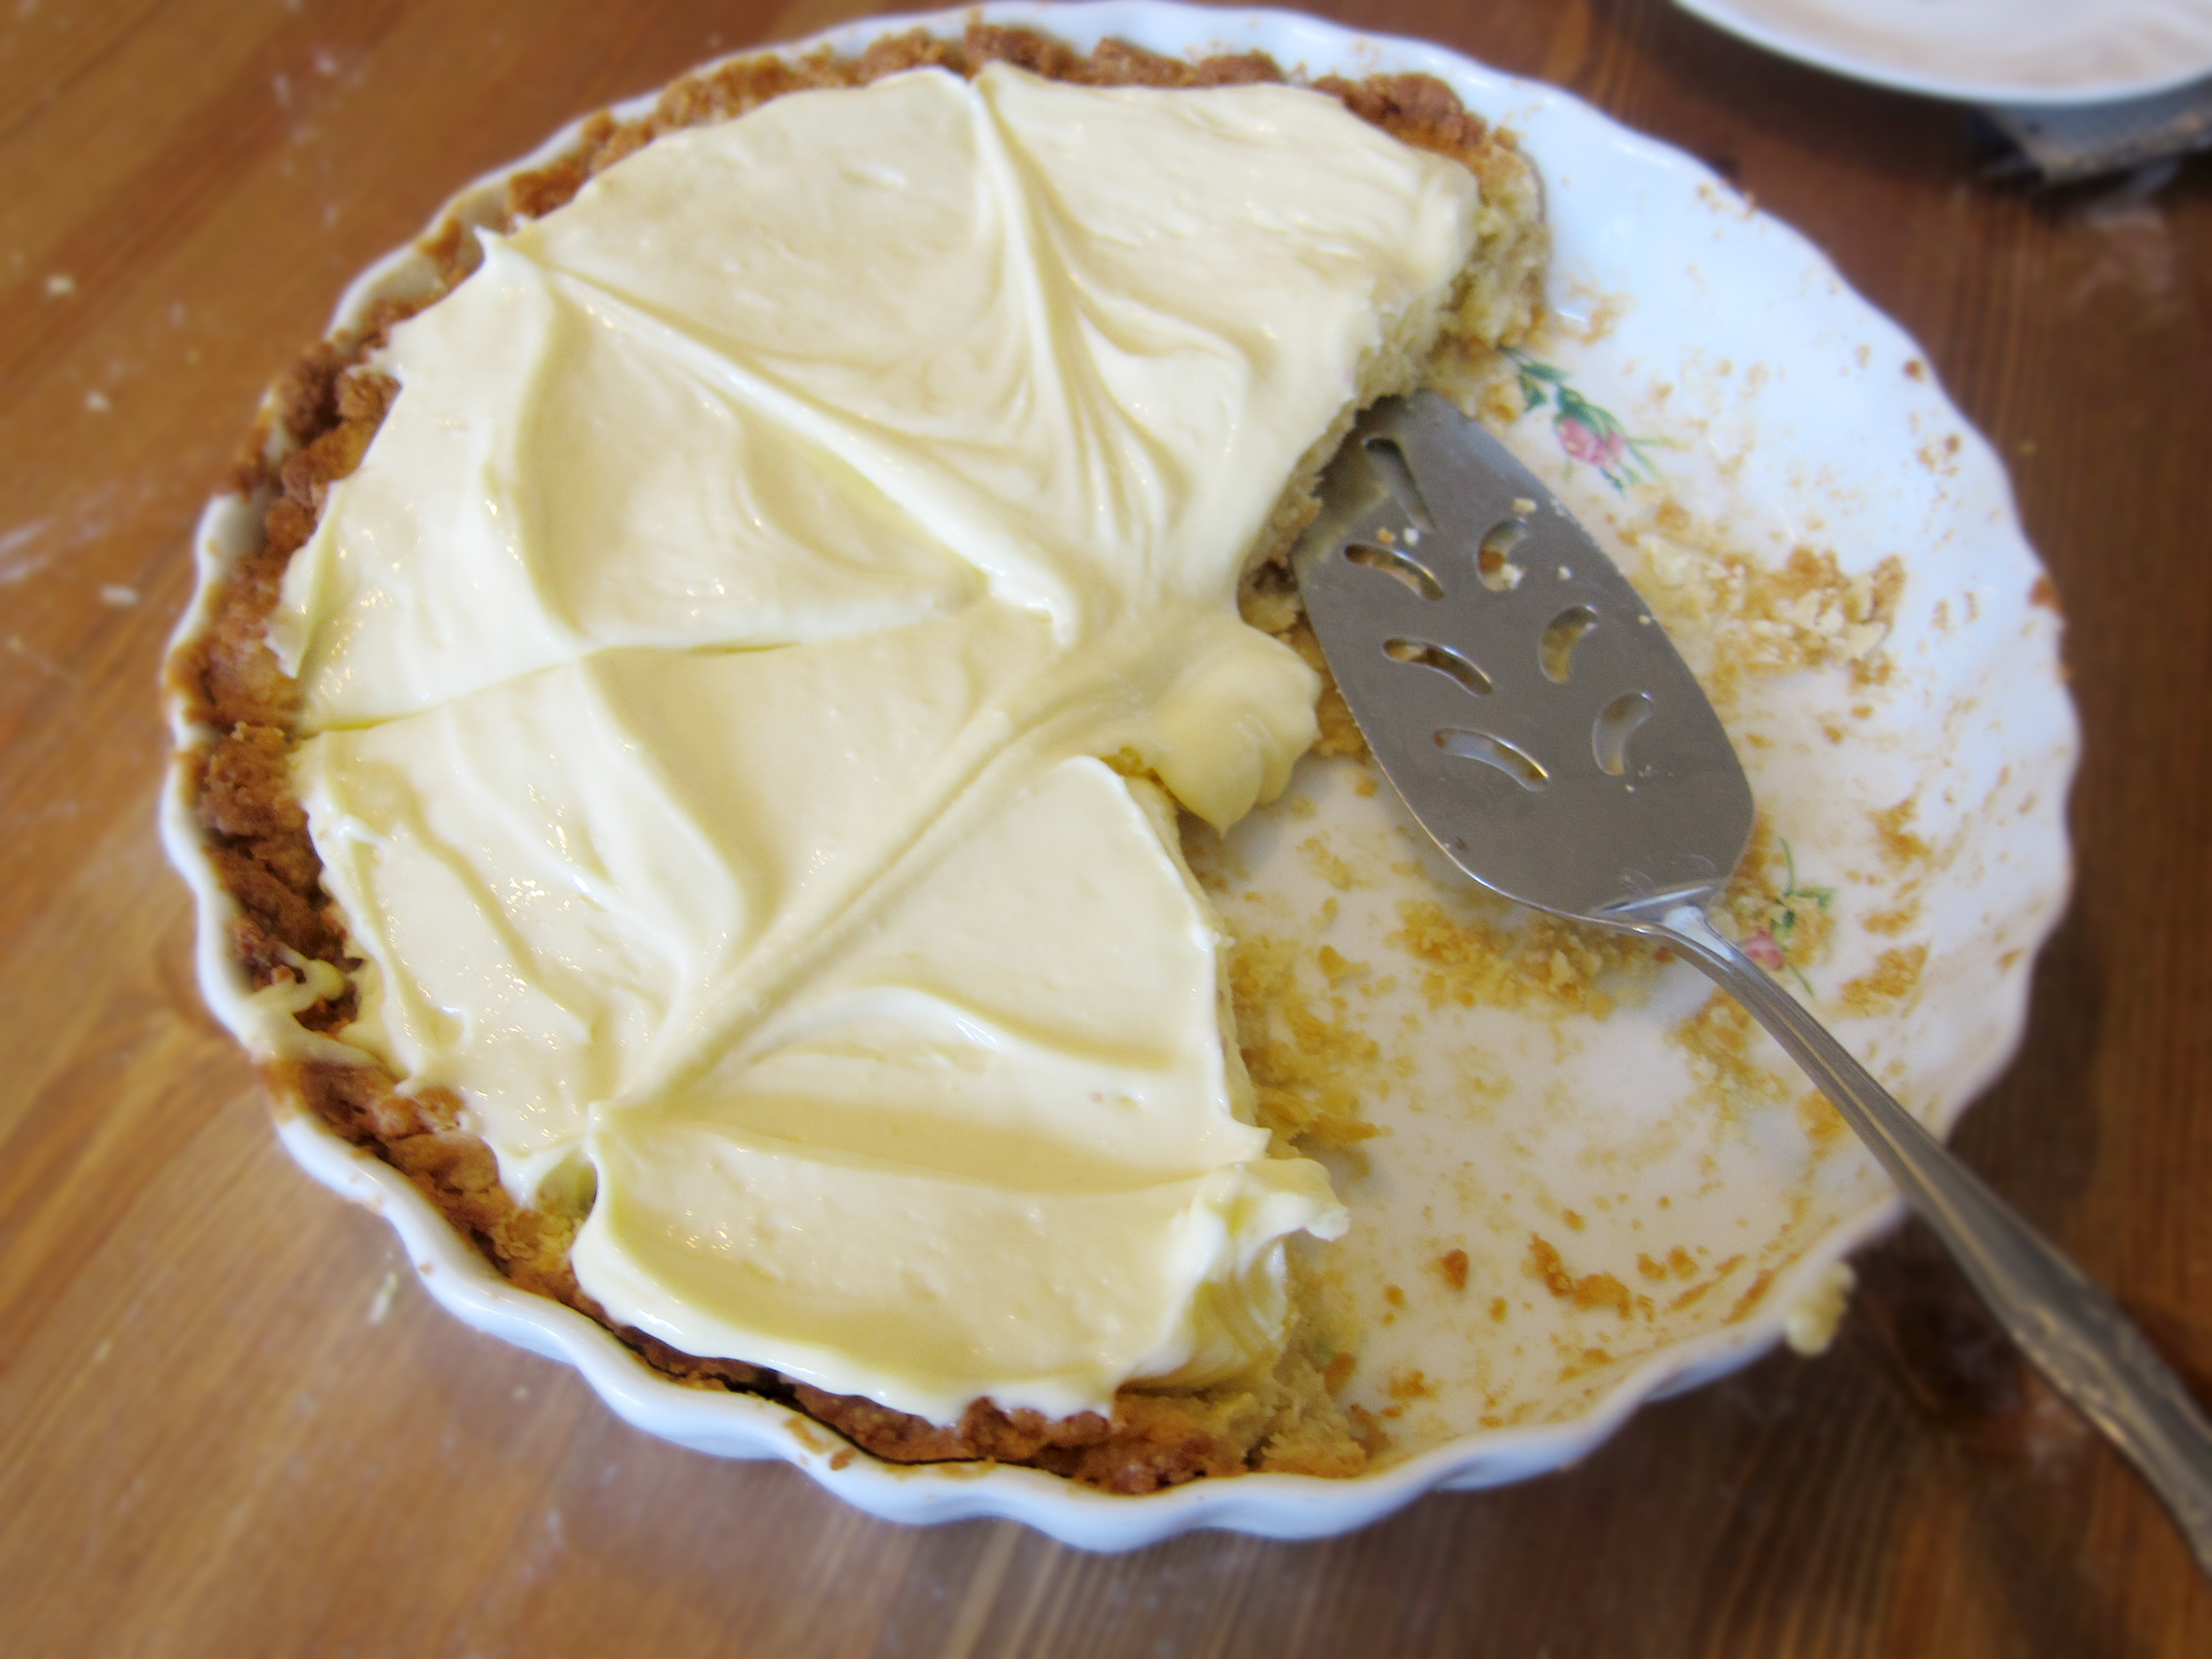 The G-d Damn Lemon Tart